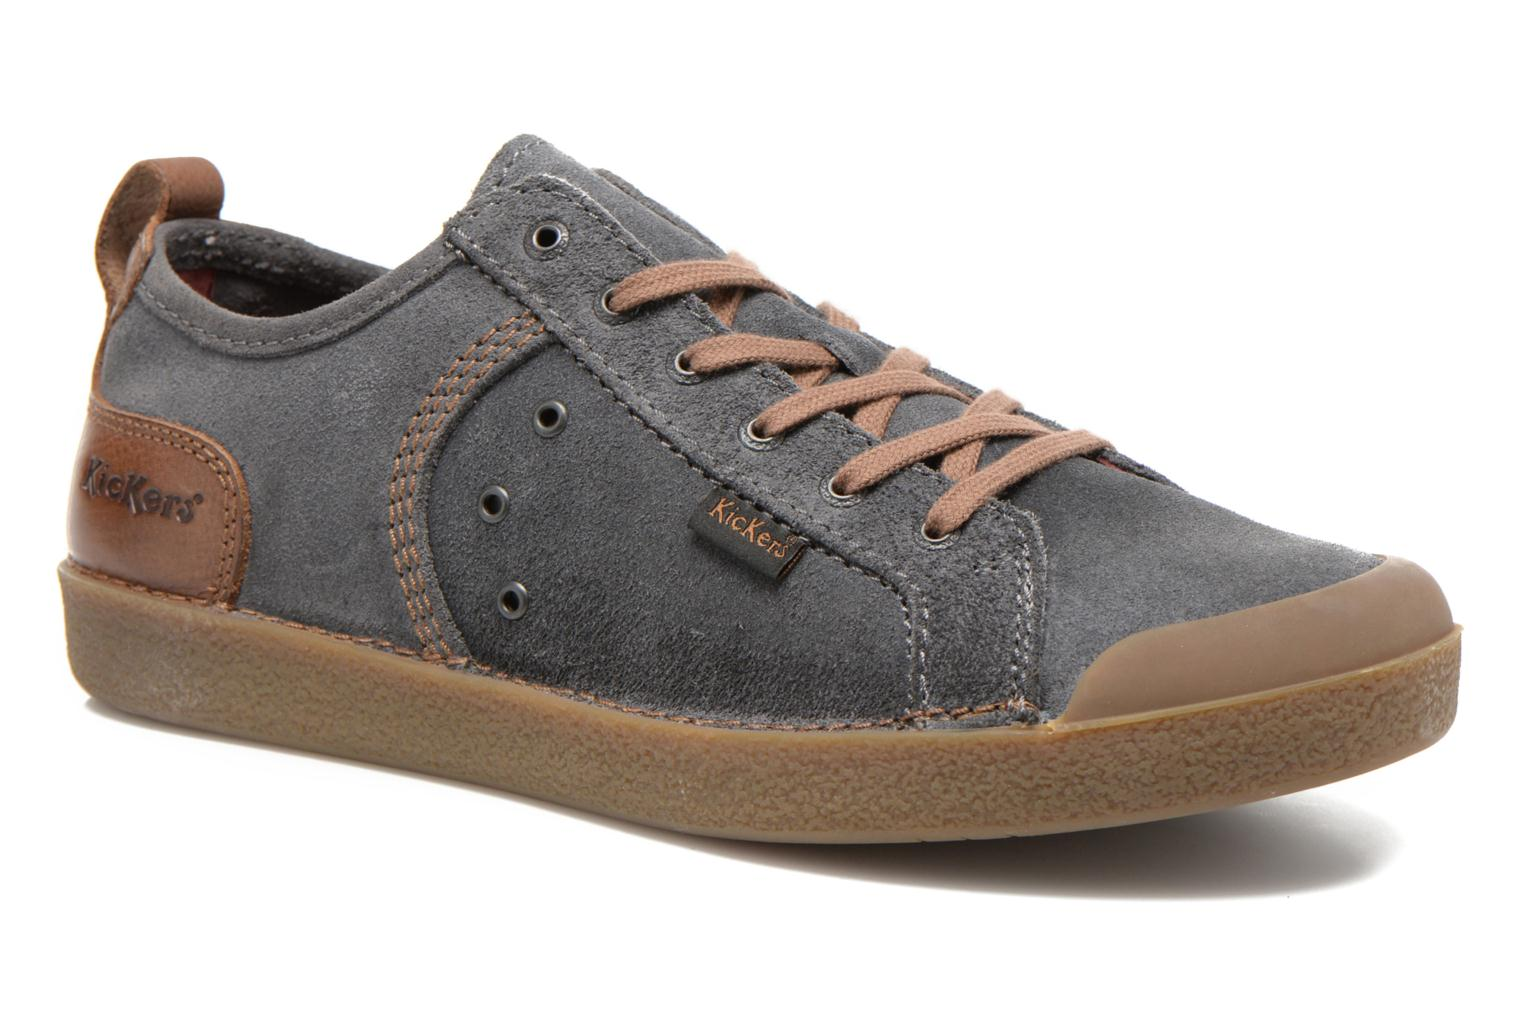 Sneakers Triomphe by Kickers